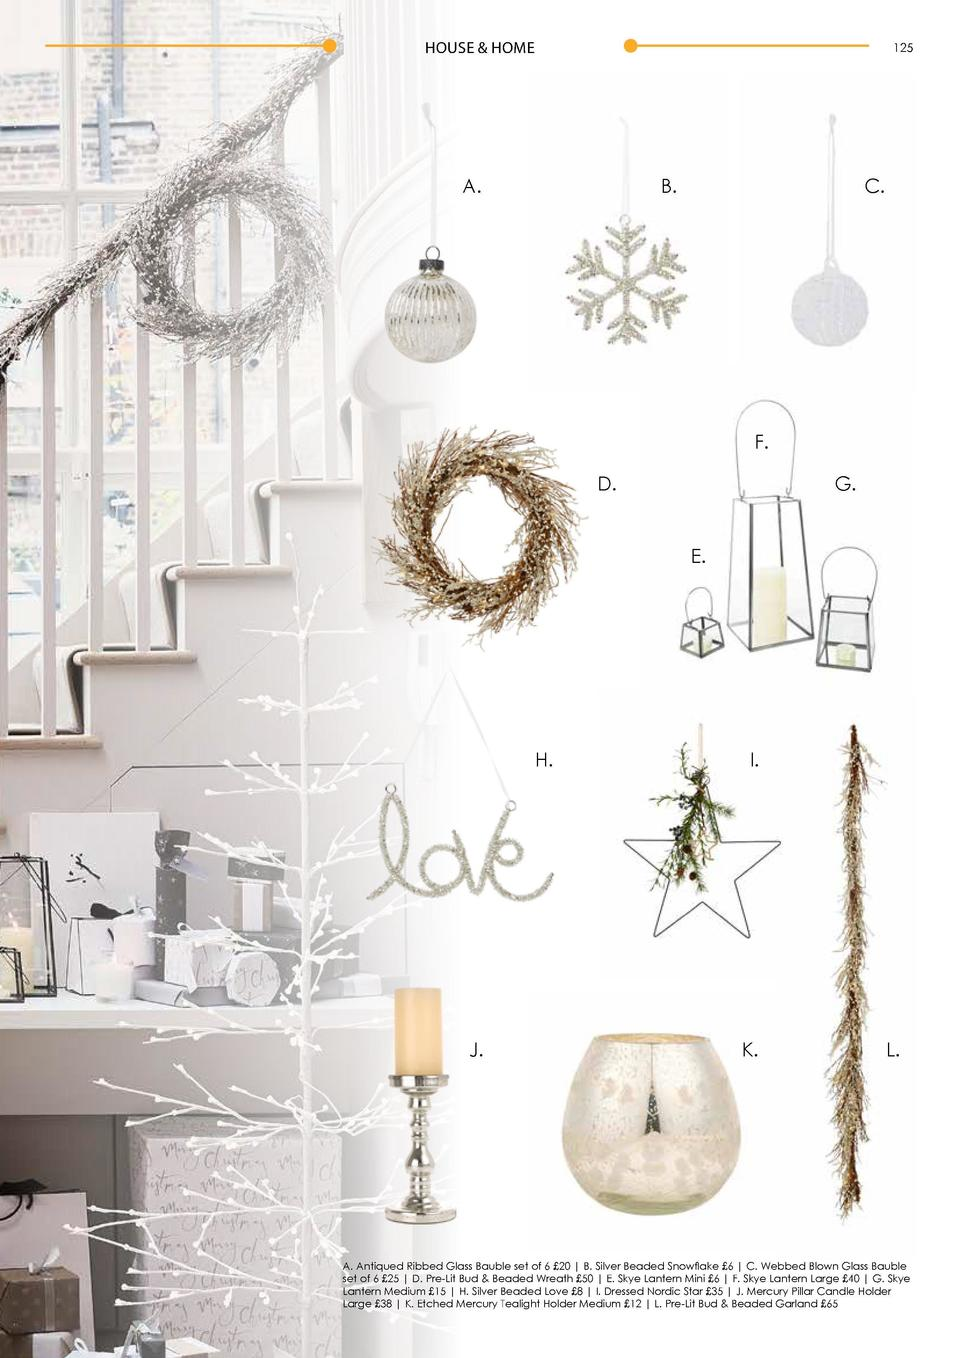 HOUSE   HOME  124  HOUSE   HOME  125  A.  B.  C.  It   s beginning to look a lot like  C H R I S T M A S. . . Deck the hal...